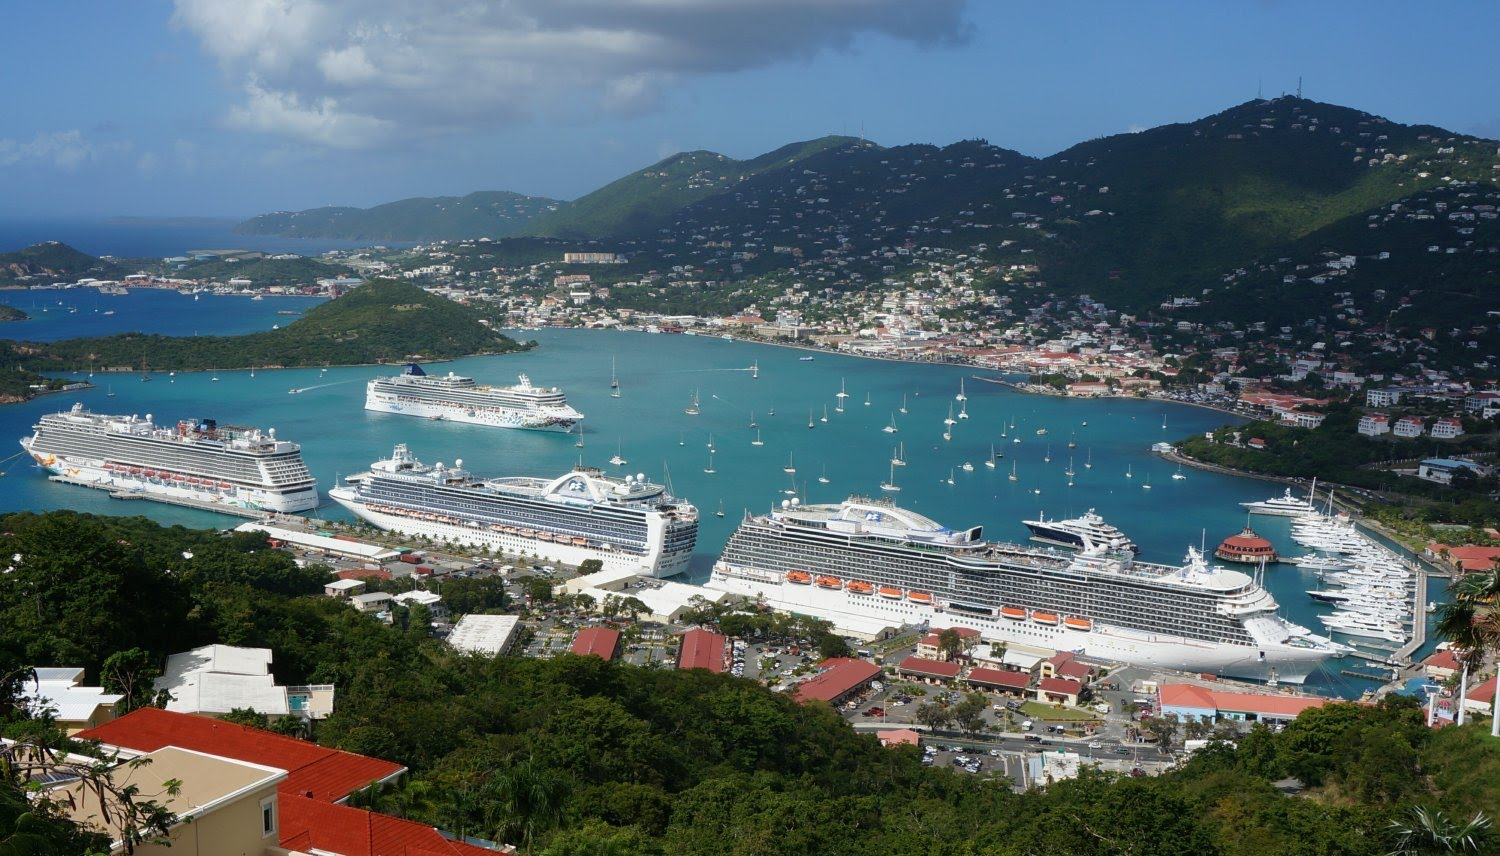 St. Thomas U.S. Virgin Islands Vacation Packages |Travel ...